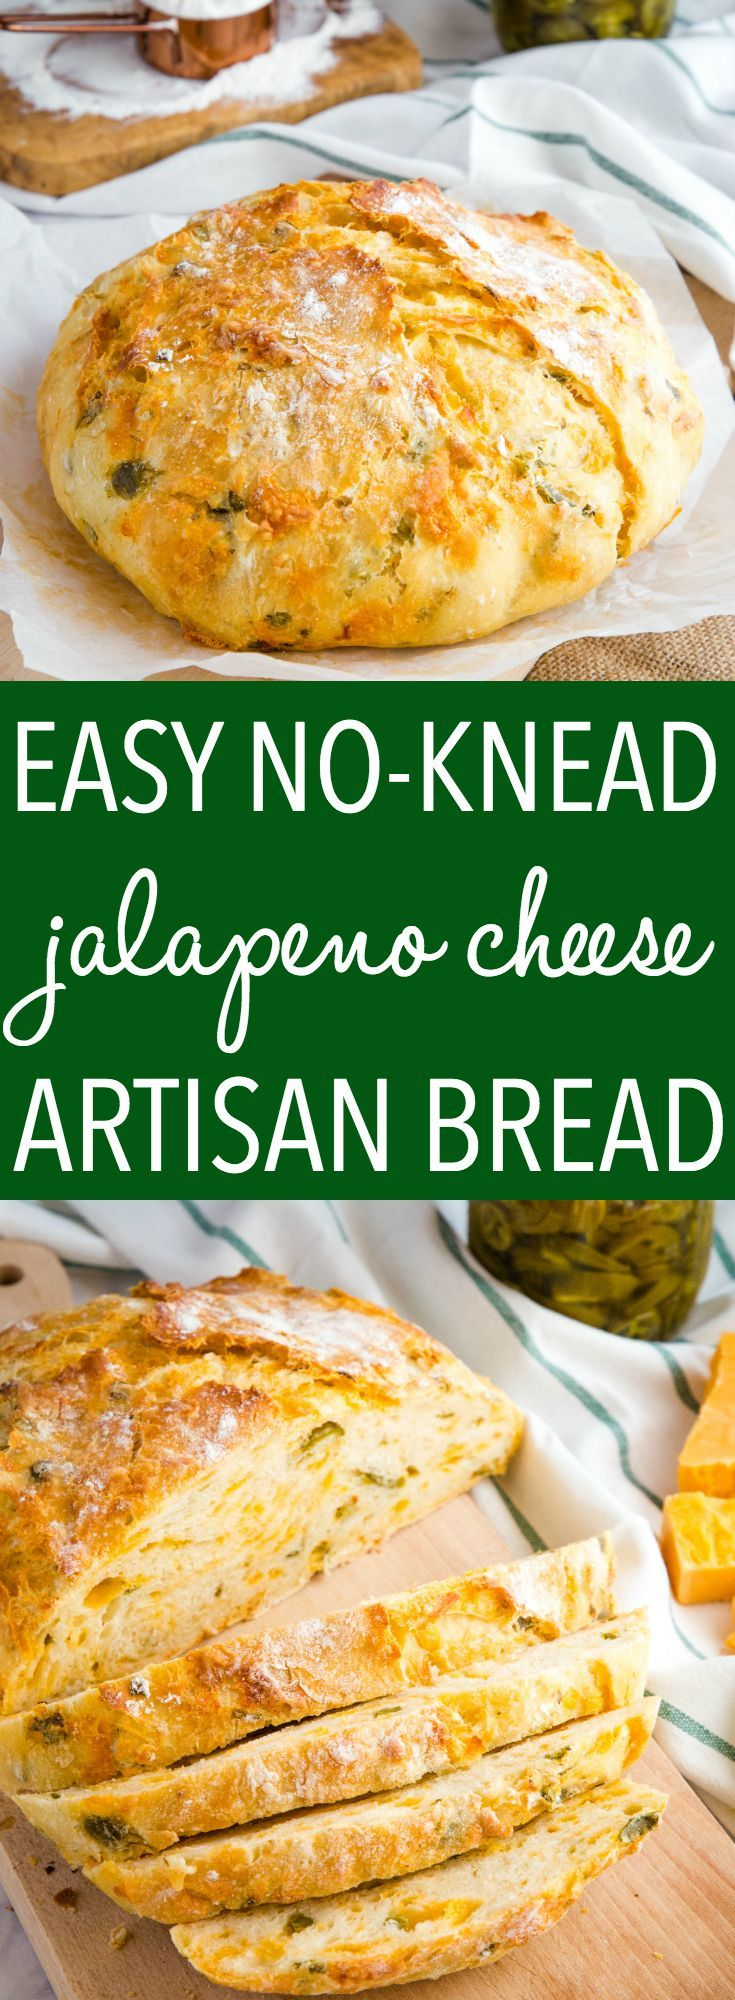 Easy No Knead Jalapeno Cheese Artisan Bread This Easy No Knead Jalapeno Cheese Artisan Bread is the BEST savoury bread for sandwiches! It's packed with spicy pickled jalapeños and real cheddar cheese! Recipe from ! via @busybakerblog